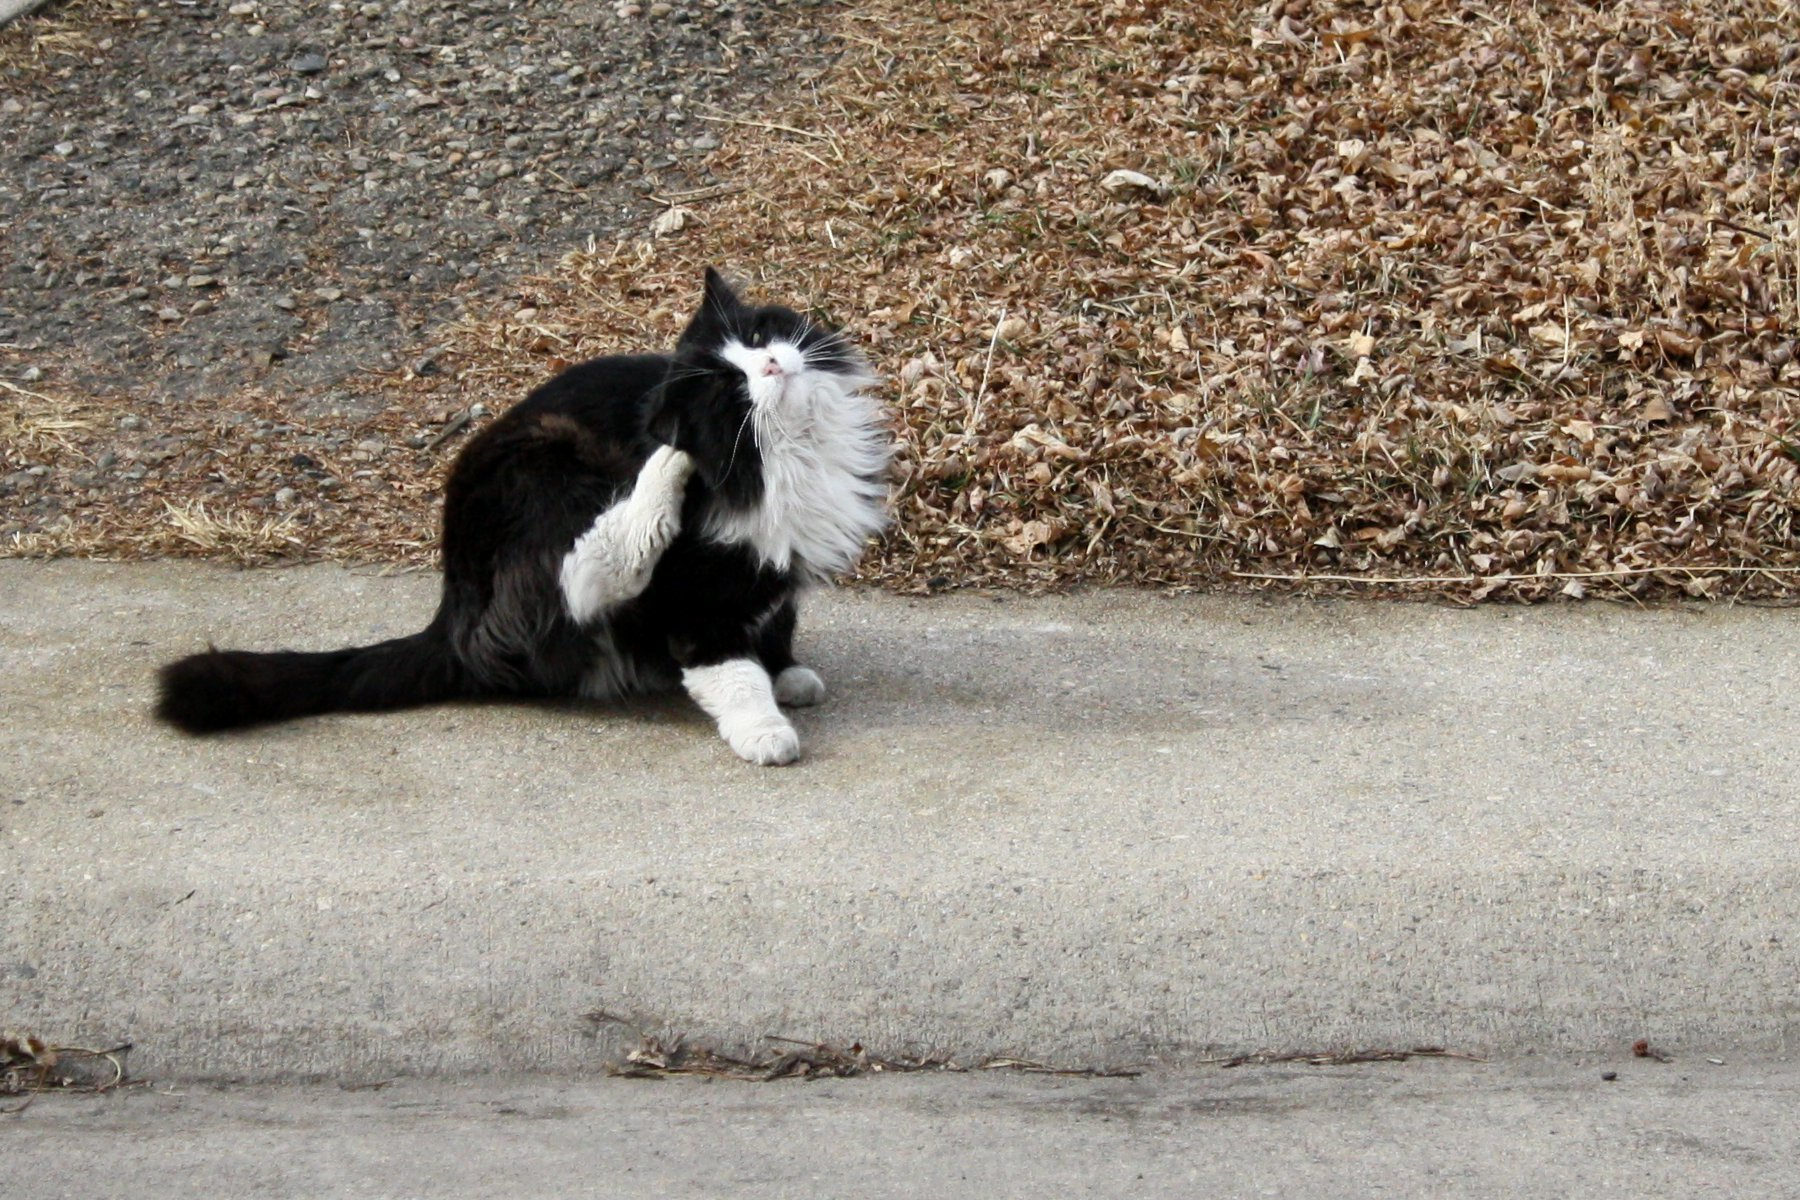 where do most stray cats live